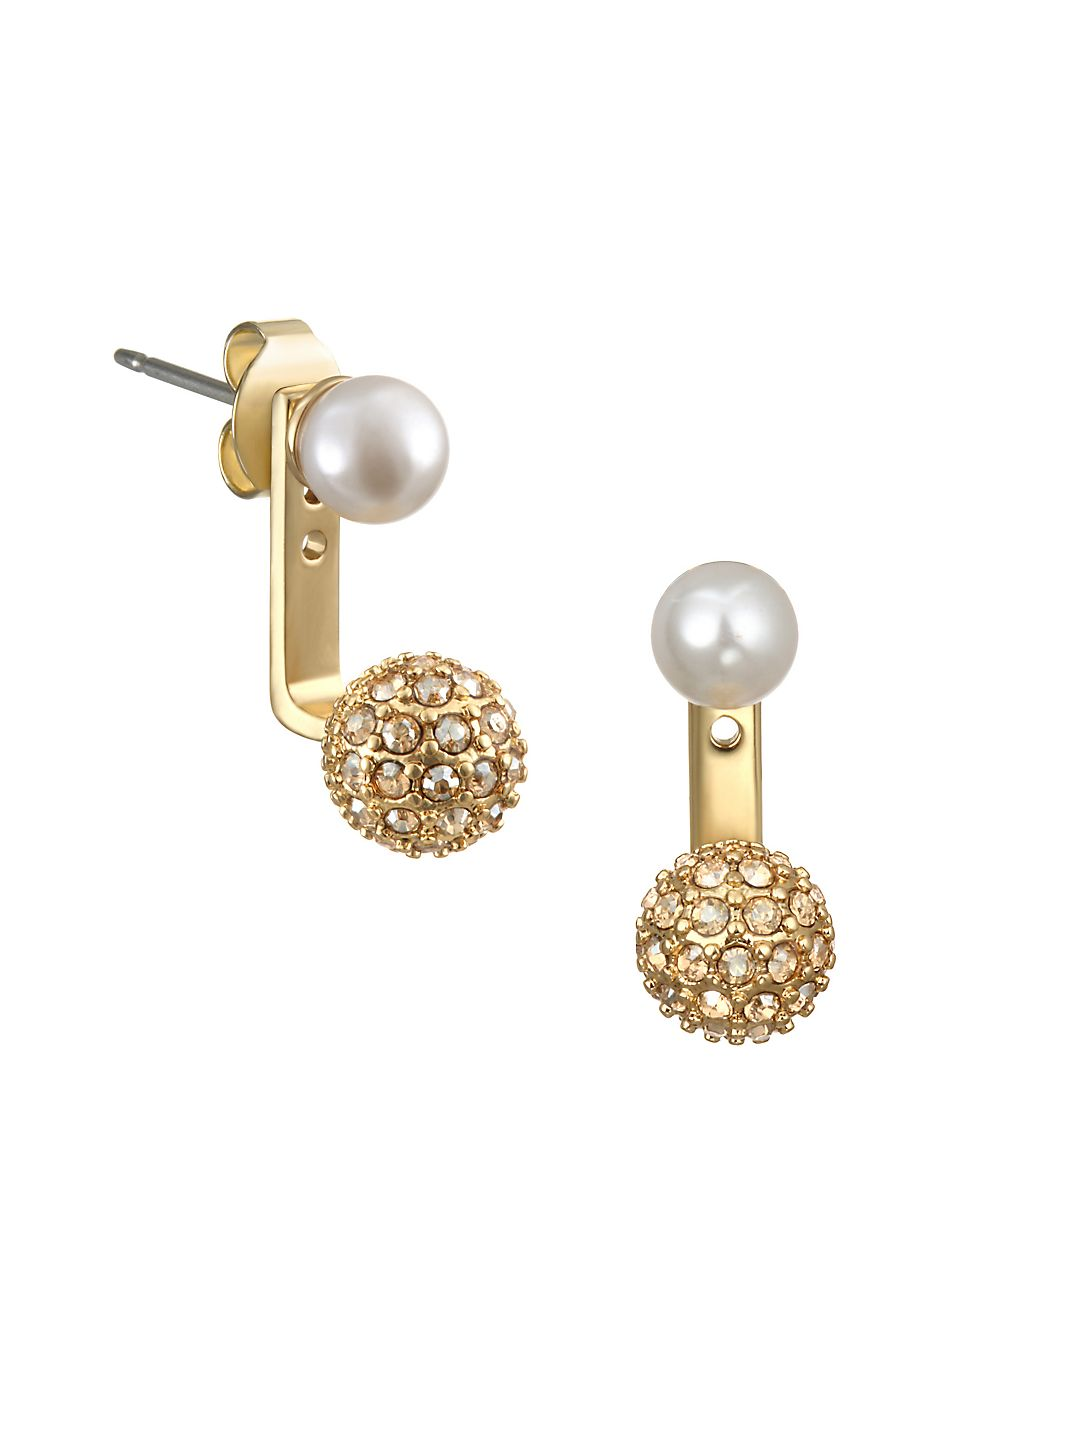 Faux Pearl, Swarovski Crystal and Crystal Jacket Earrings